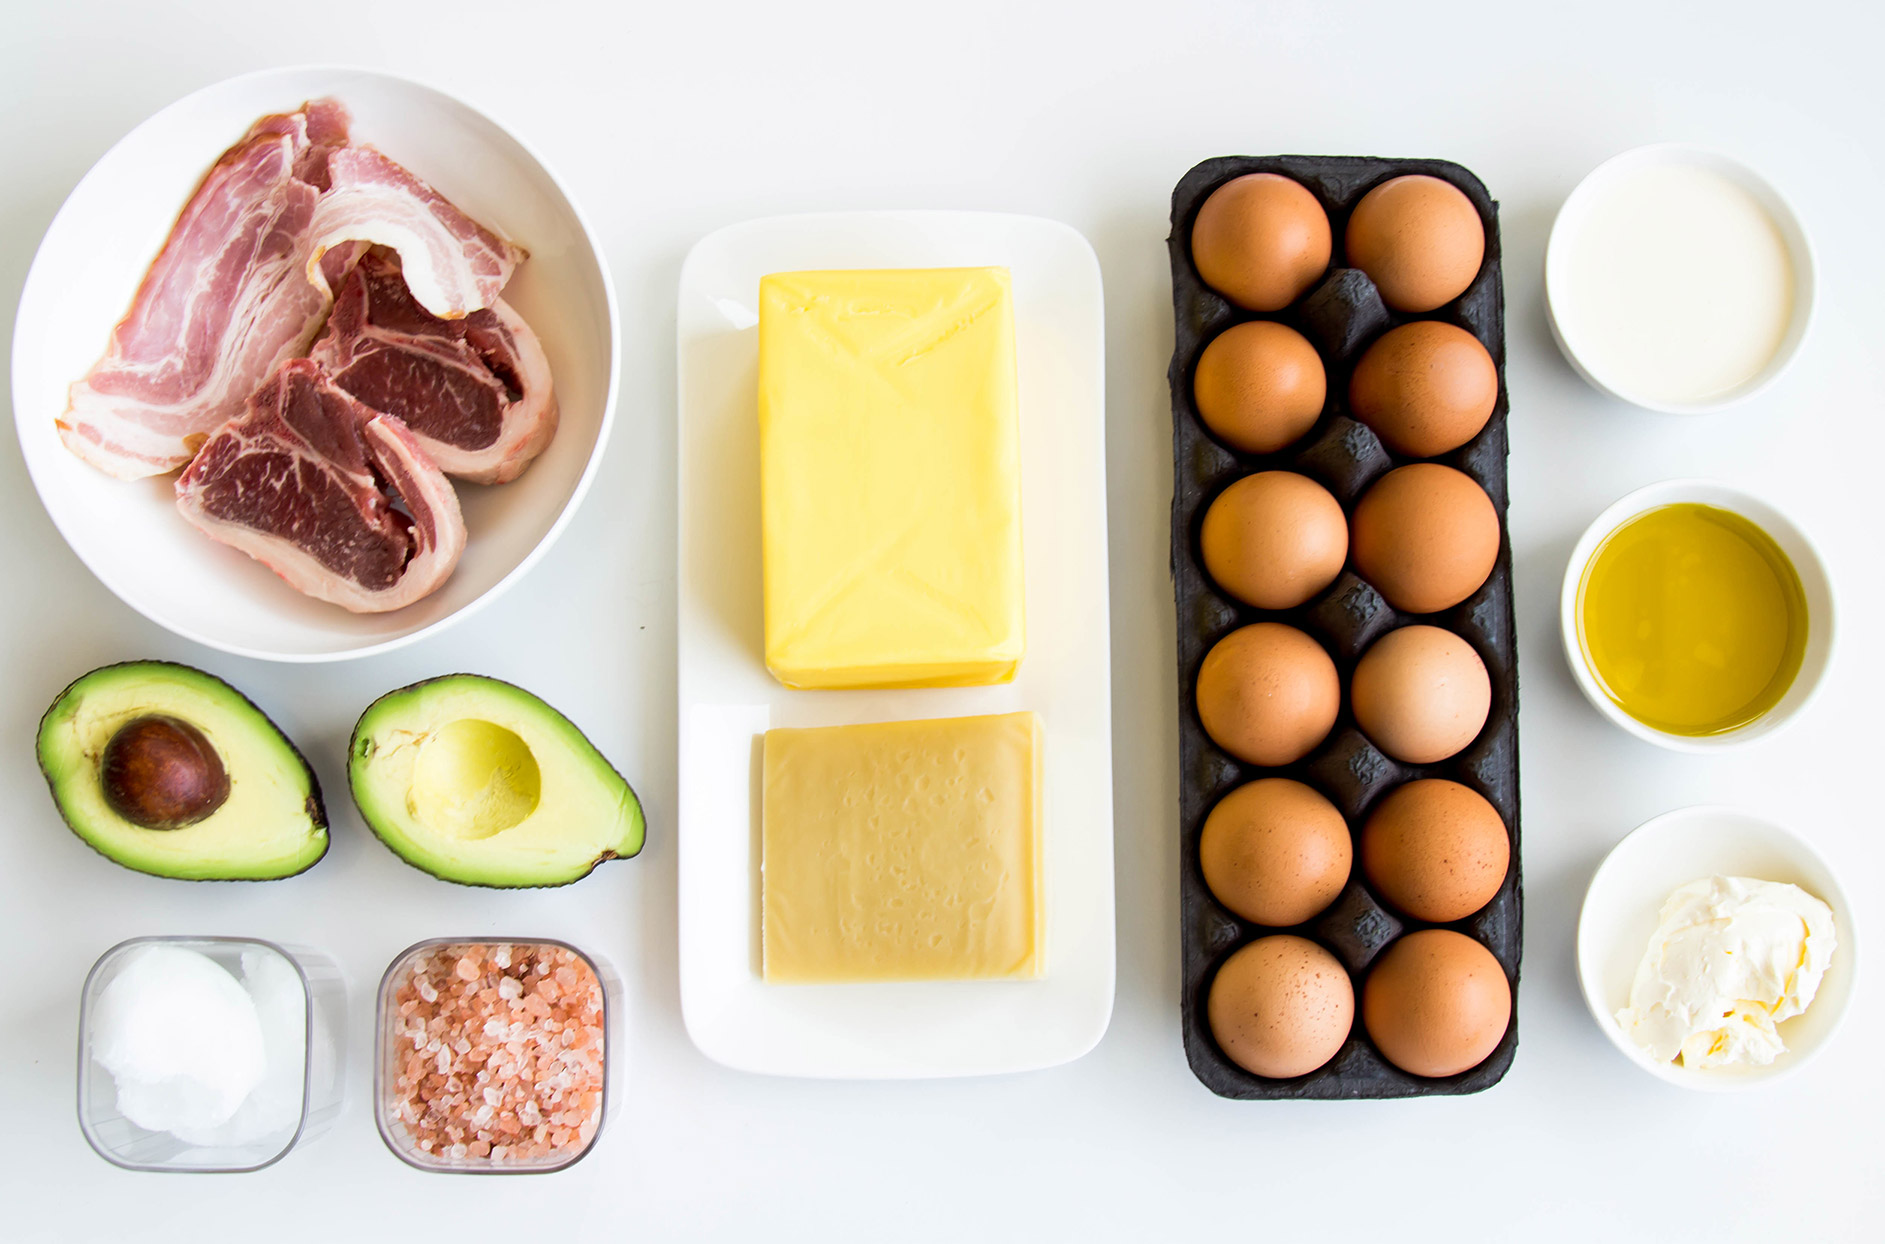 fatty meats, avocado, salt, butter, cheese, eggs, mayonnaise, sauces, creams